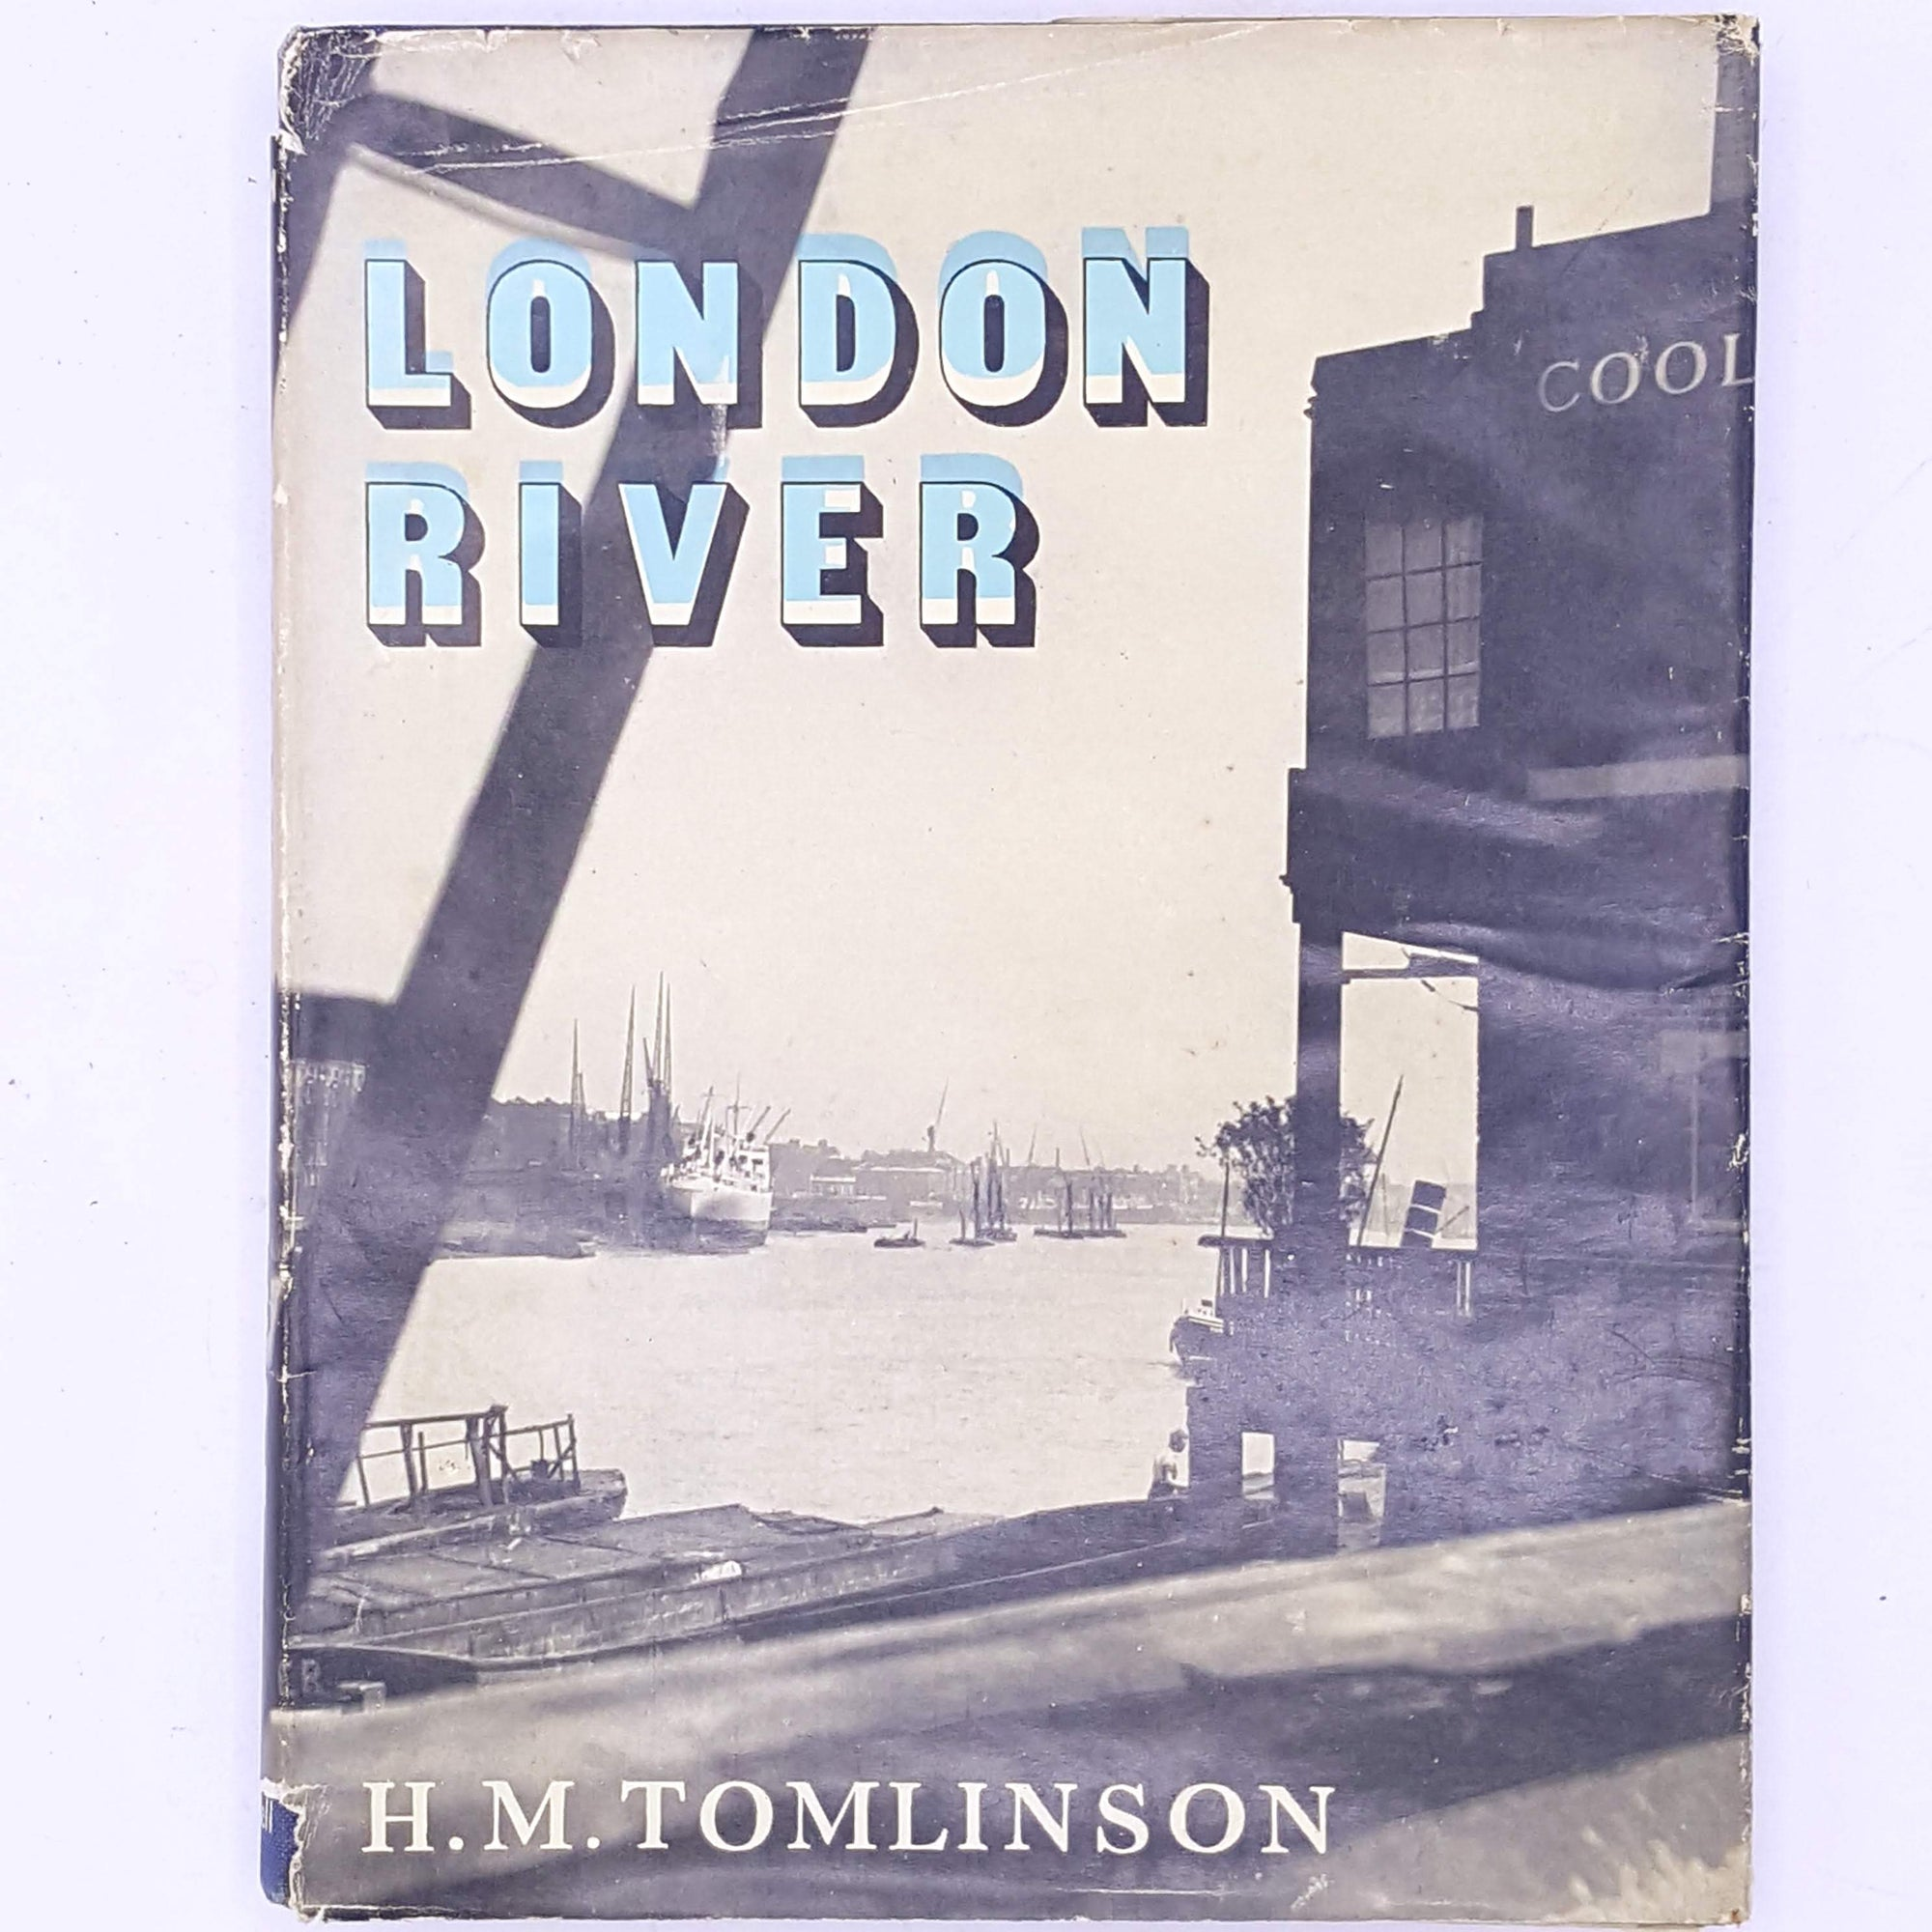 London River by H.M. Tomlinson